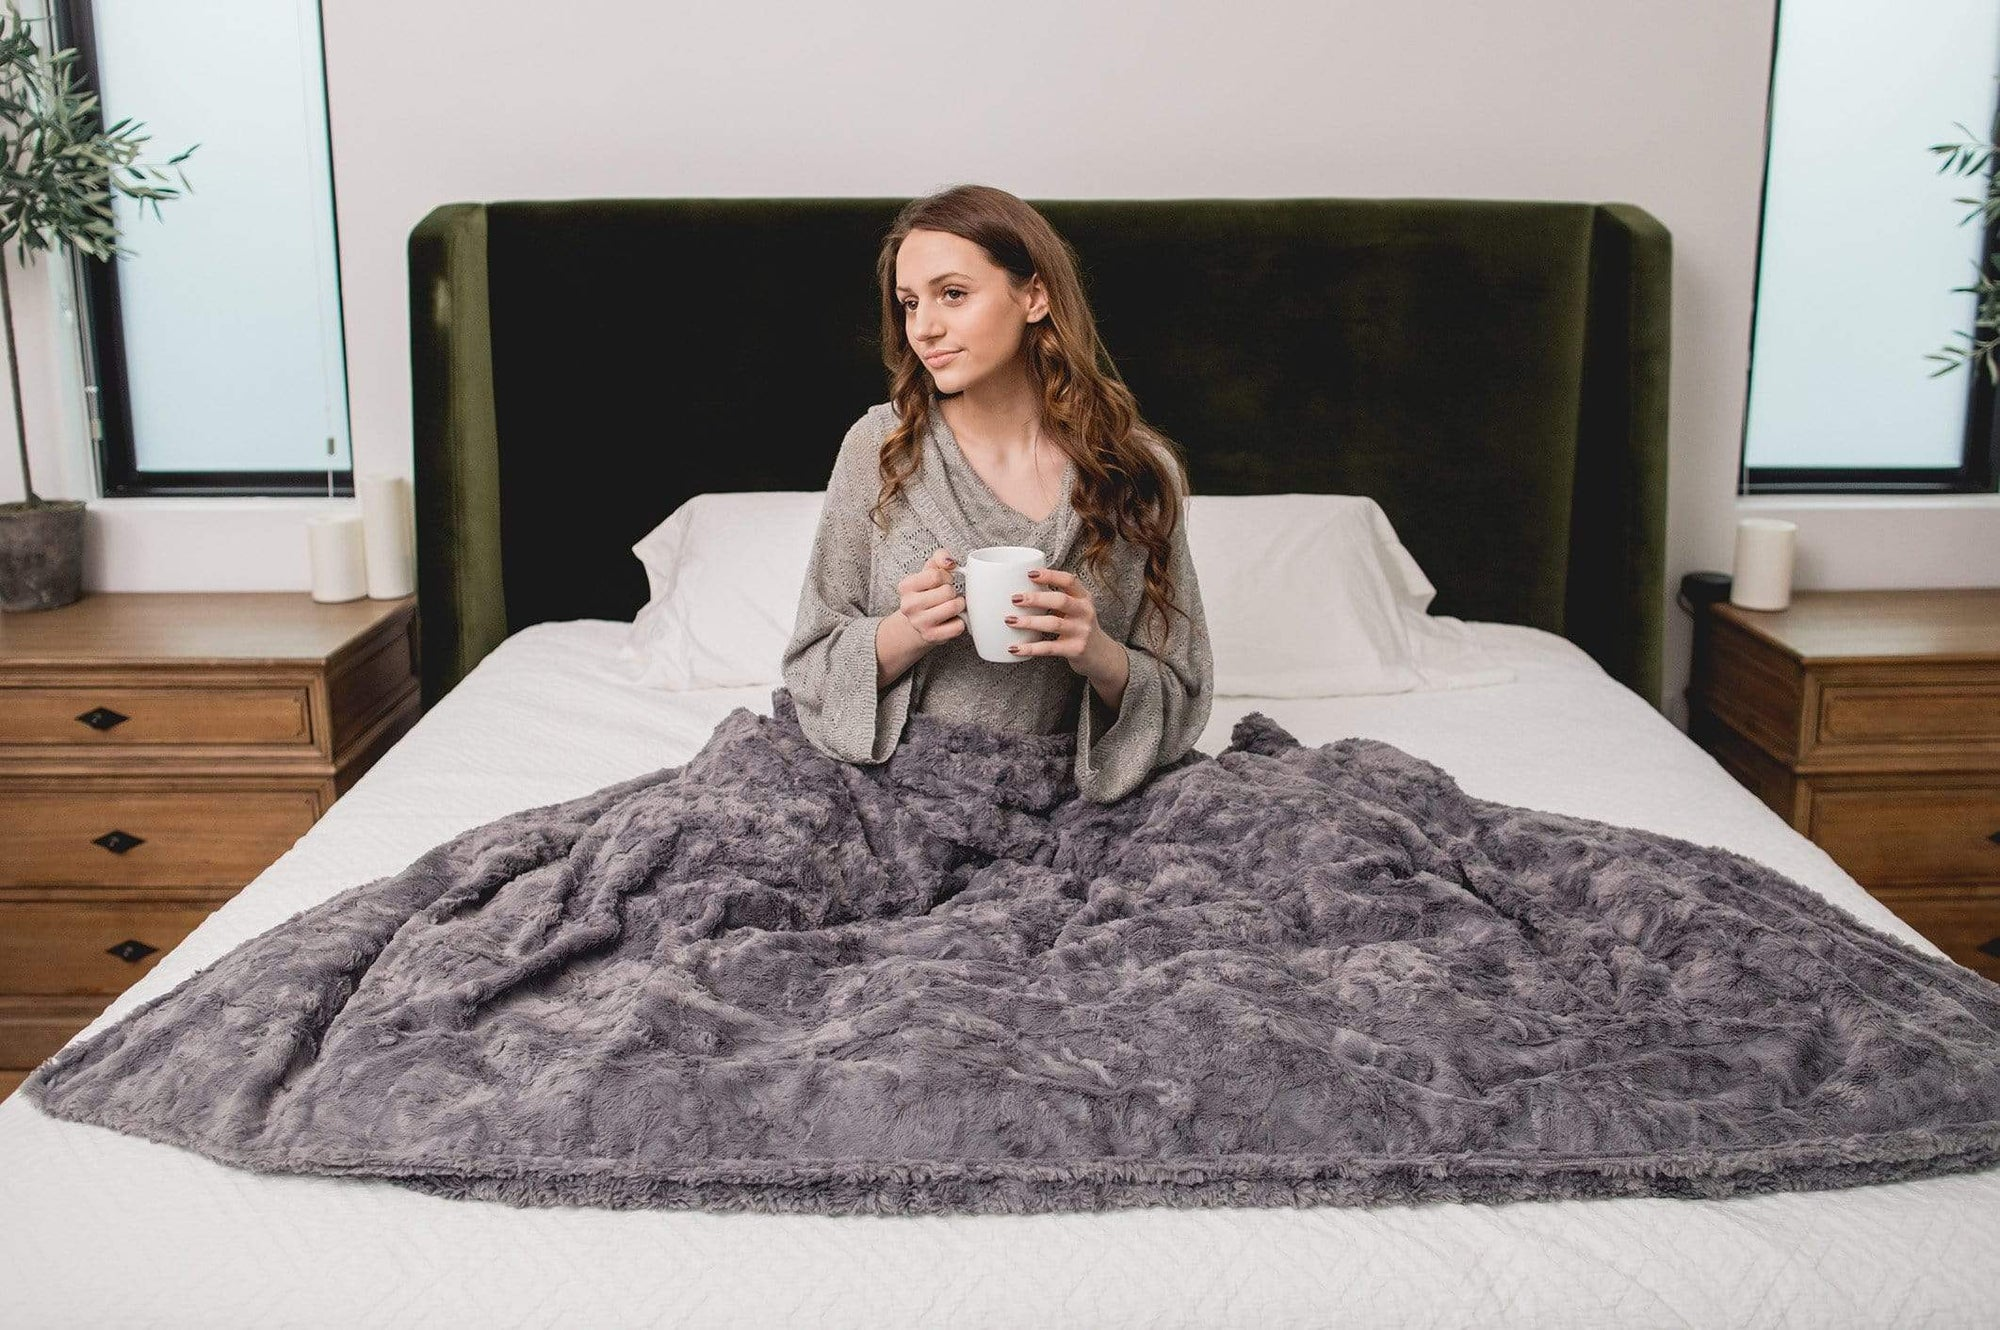 What does a Weighted Blanket Do? How Do They Work?